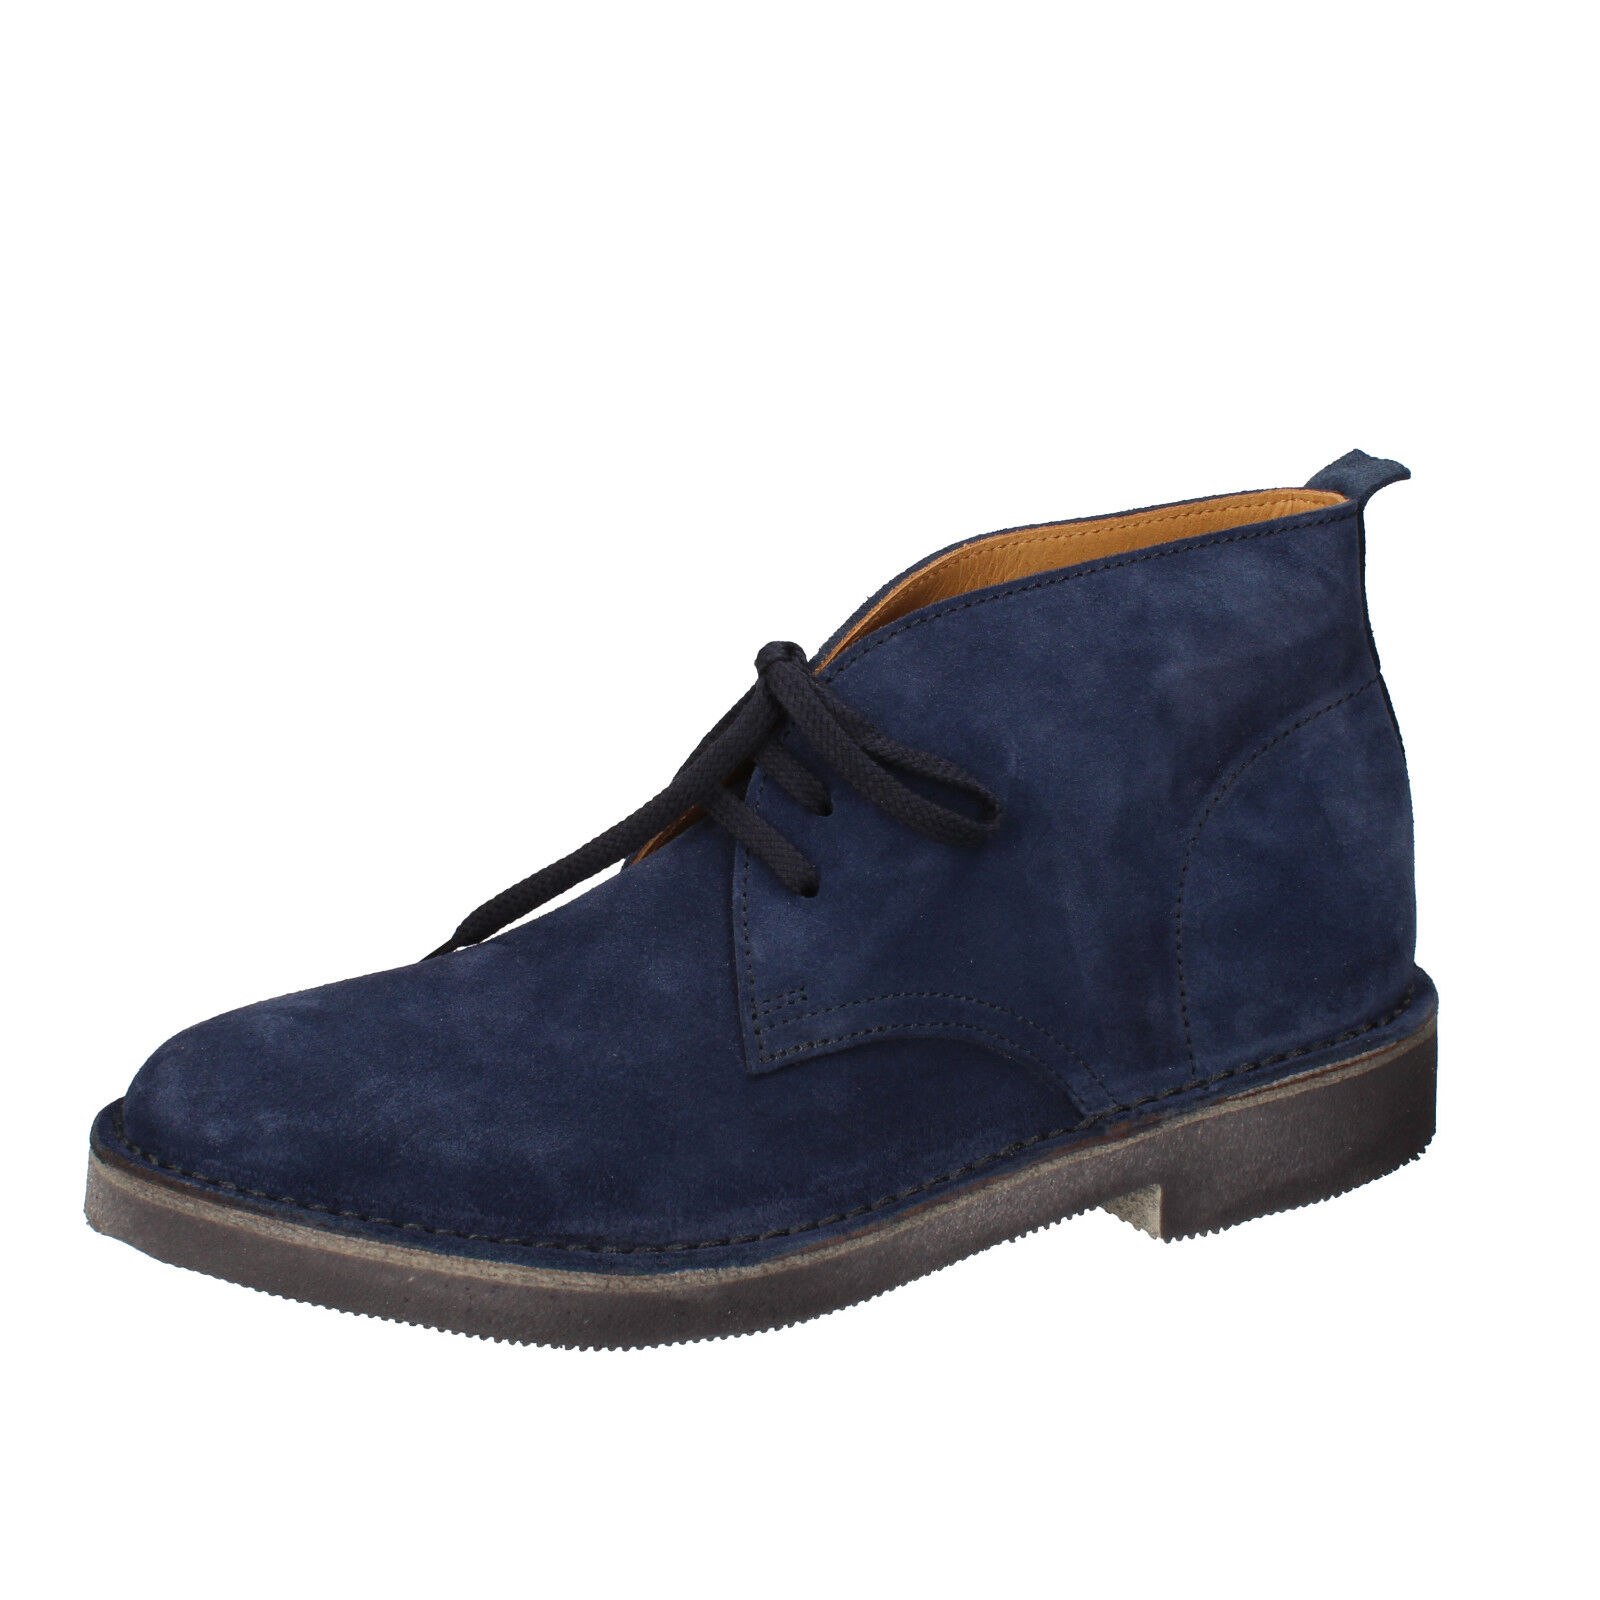 Men's shoes MOMA 9 () desert boots bluee suede AB327-C